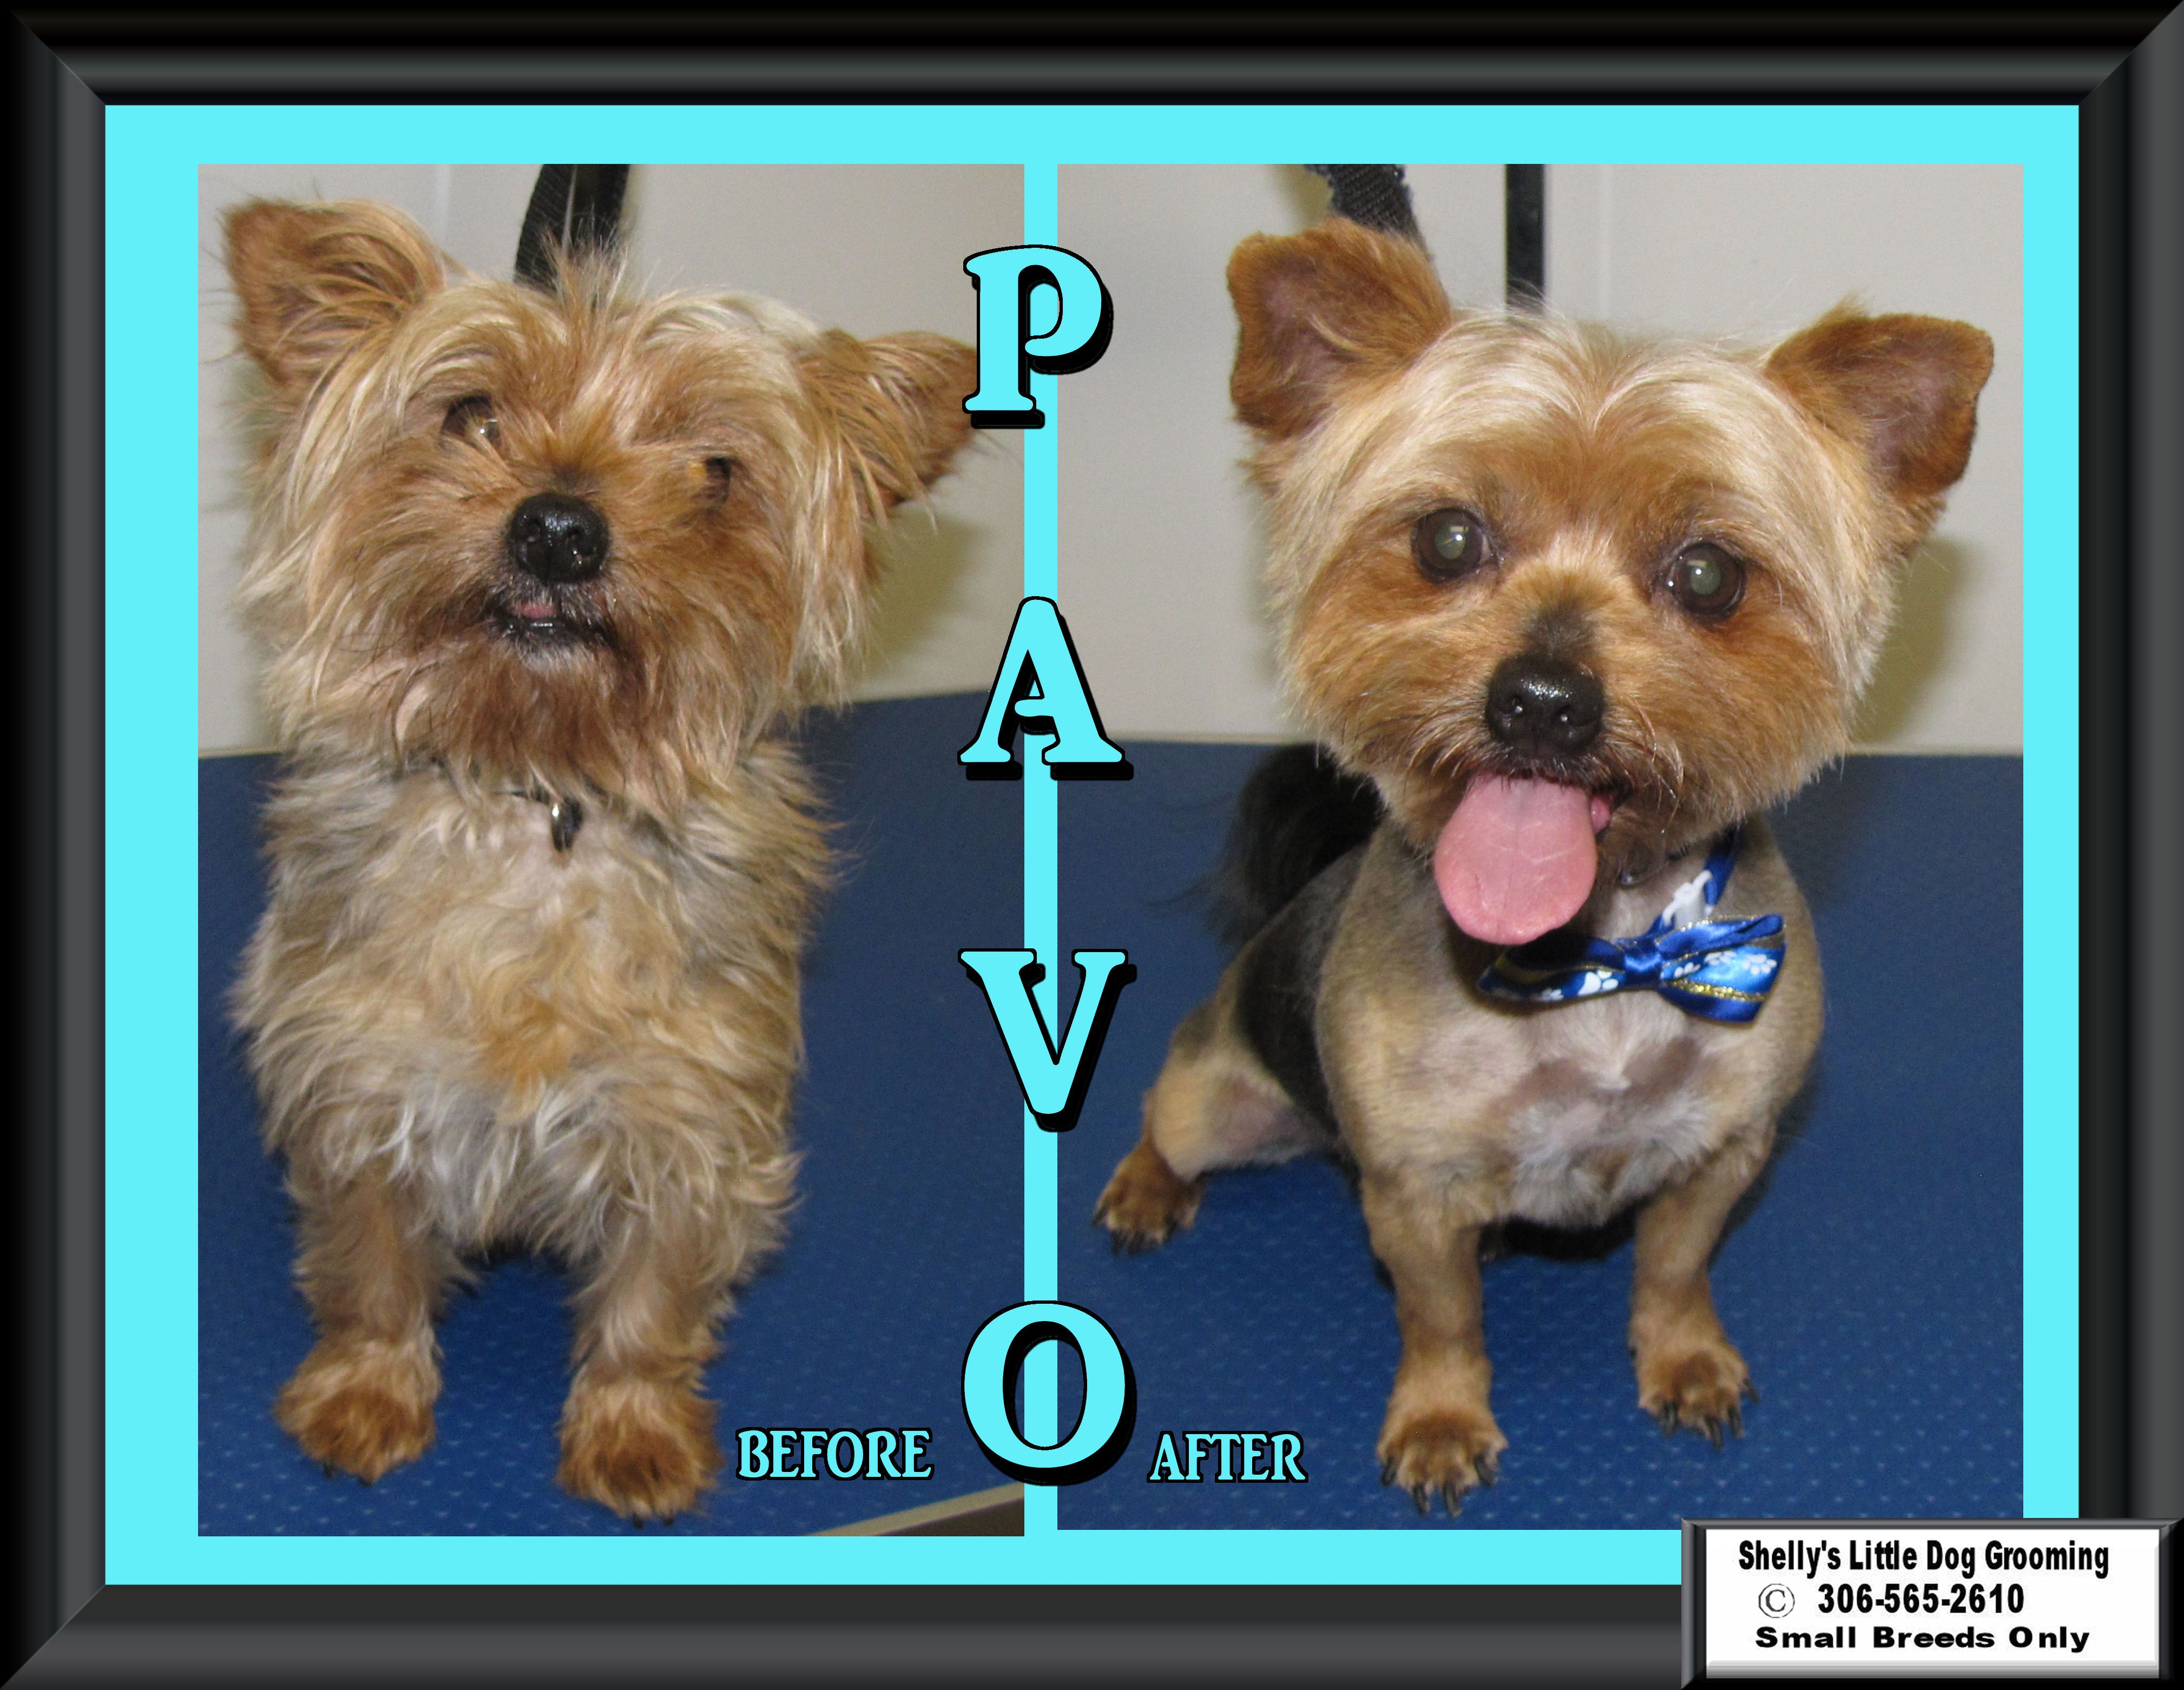 Pavo is very good for his groom but he looks straight up nose in the air when you are grooming his face. - silly pup lol :)